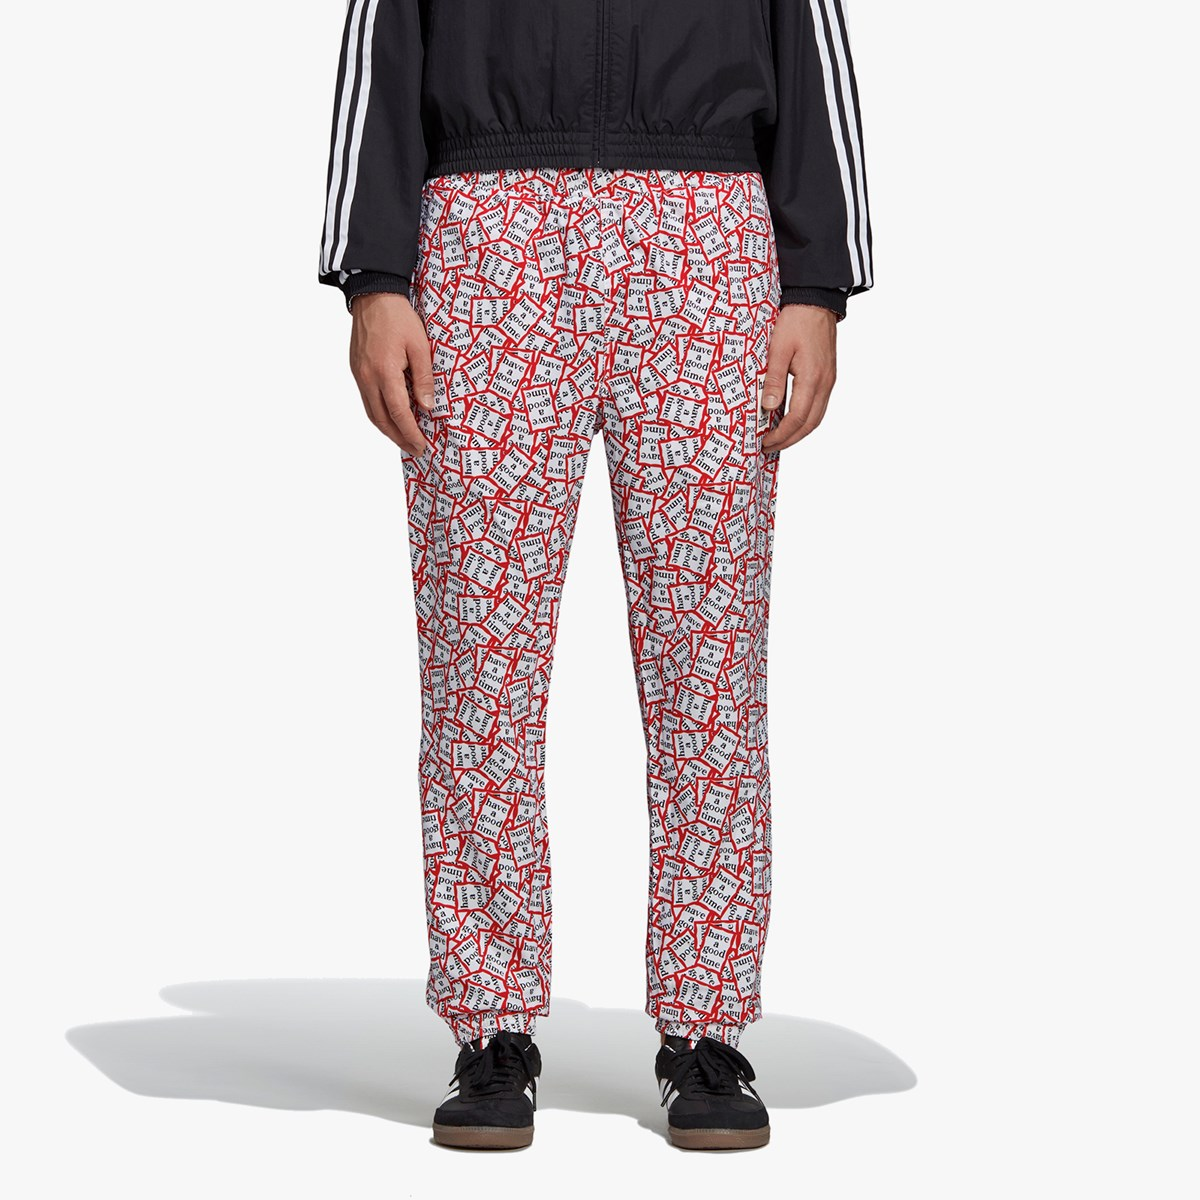 new style bd1c7 46ce7 adidas Reversible Track Pants x Have A Good Time - Dp7445 - Sneakersnstuff   sneakers  streetwear online since 1999